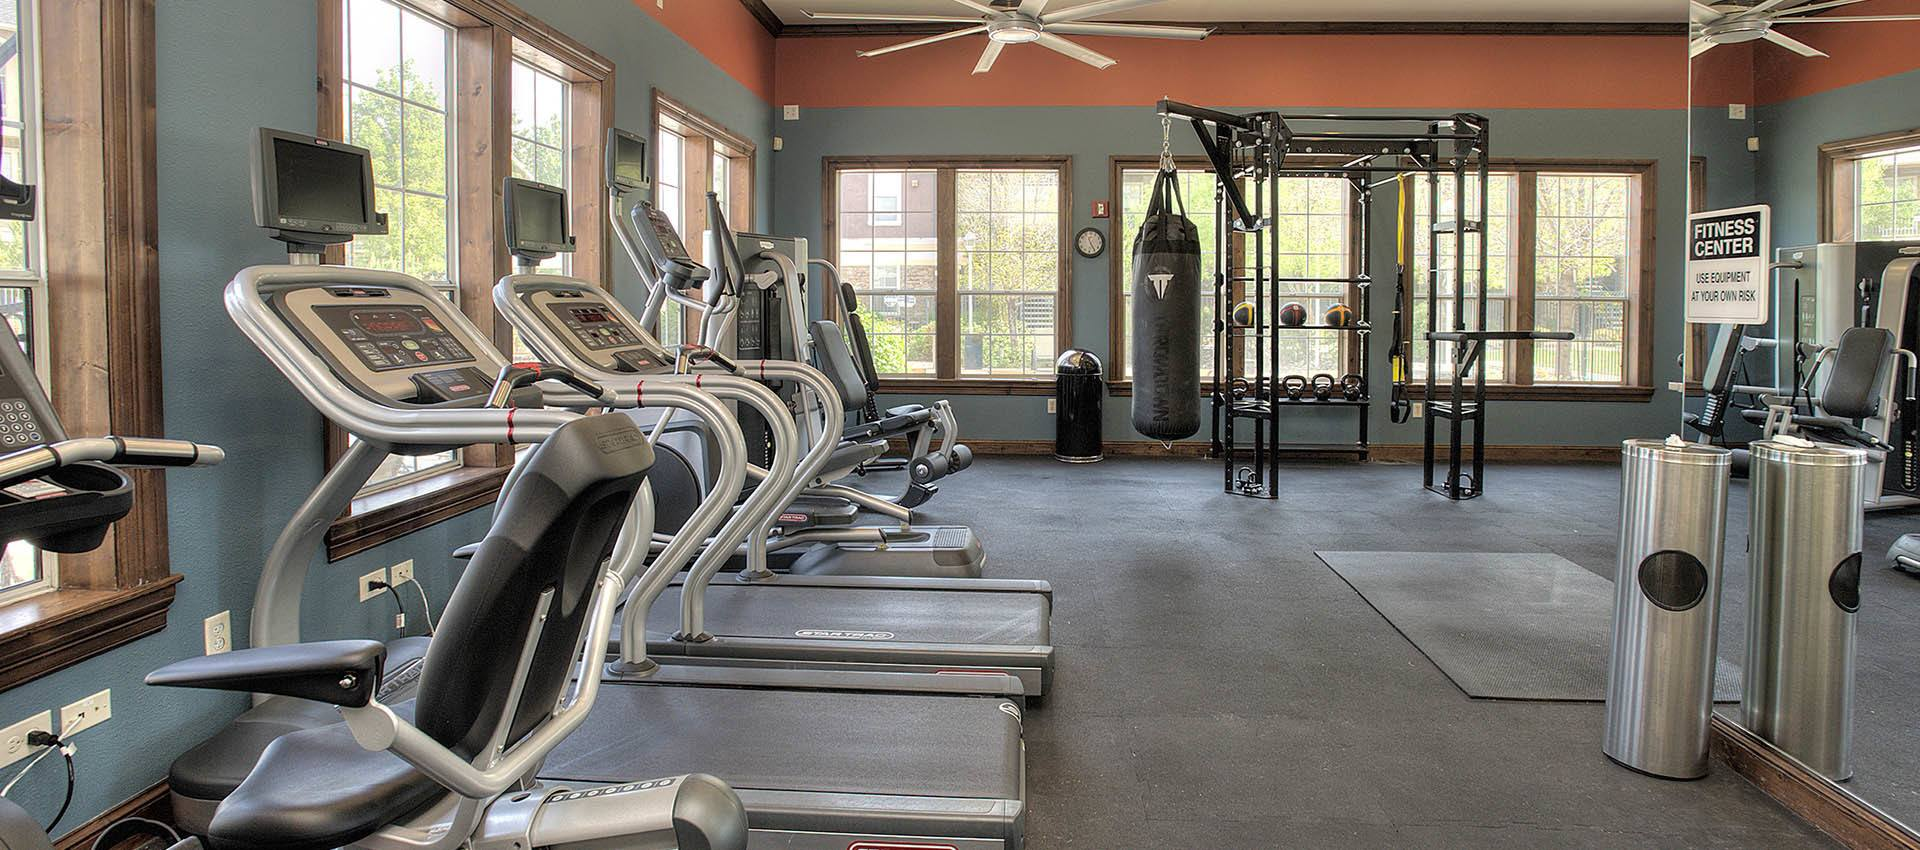 24-Hour Fitness Center at The Vintage at South Meadows Condominium Rentals in Reno